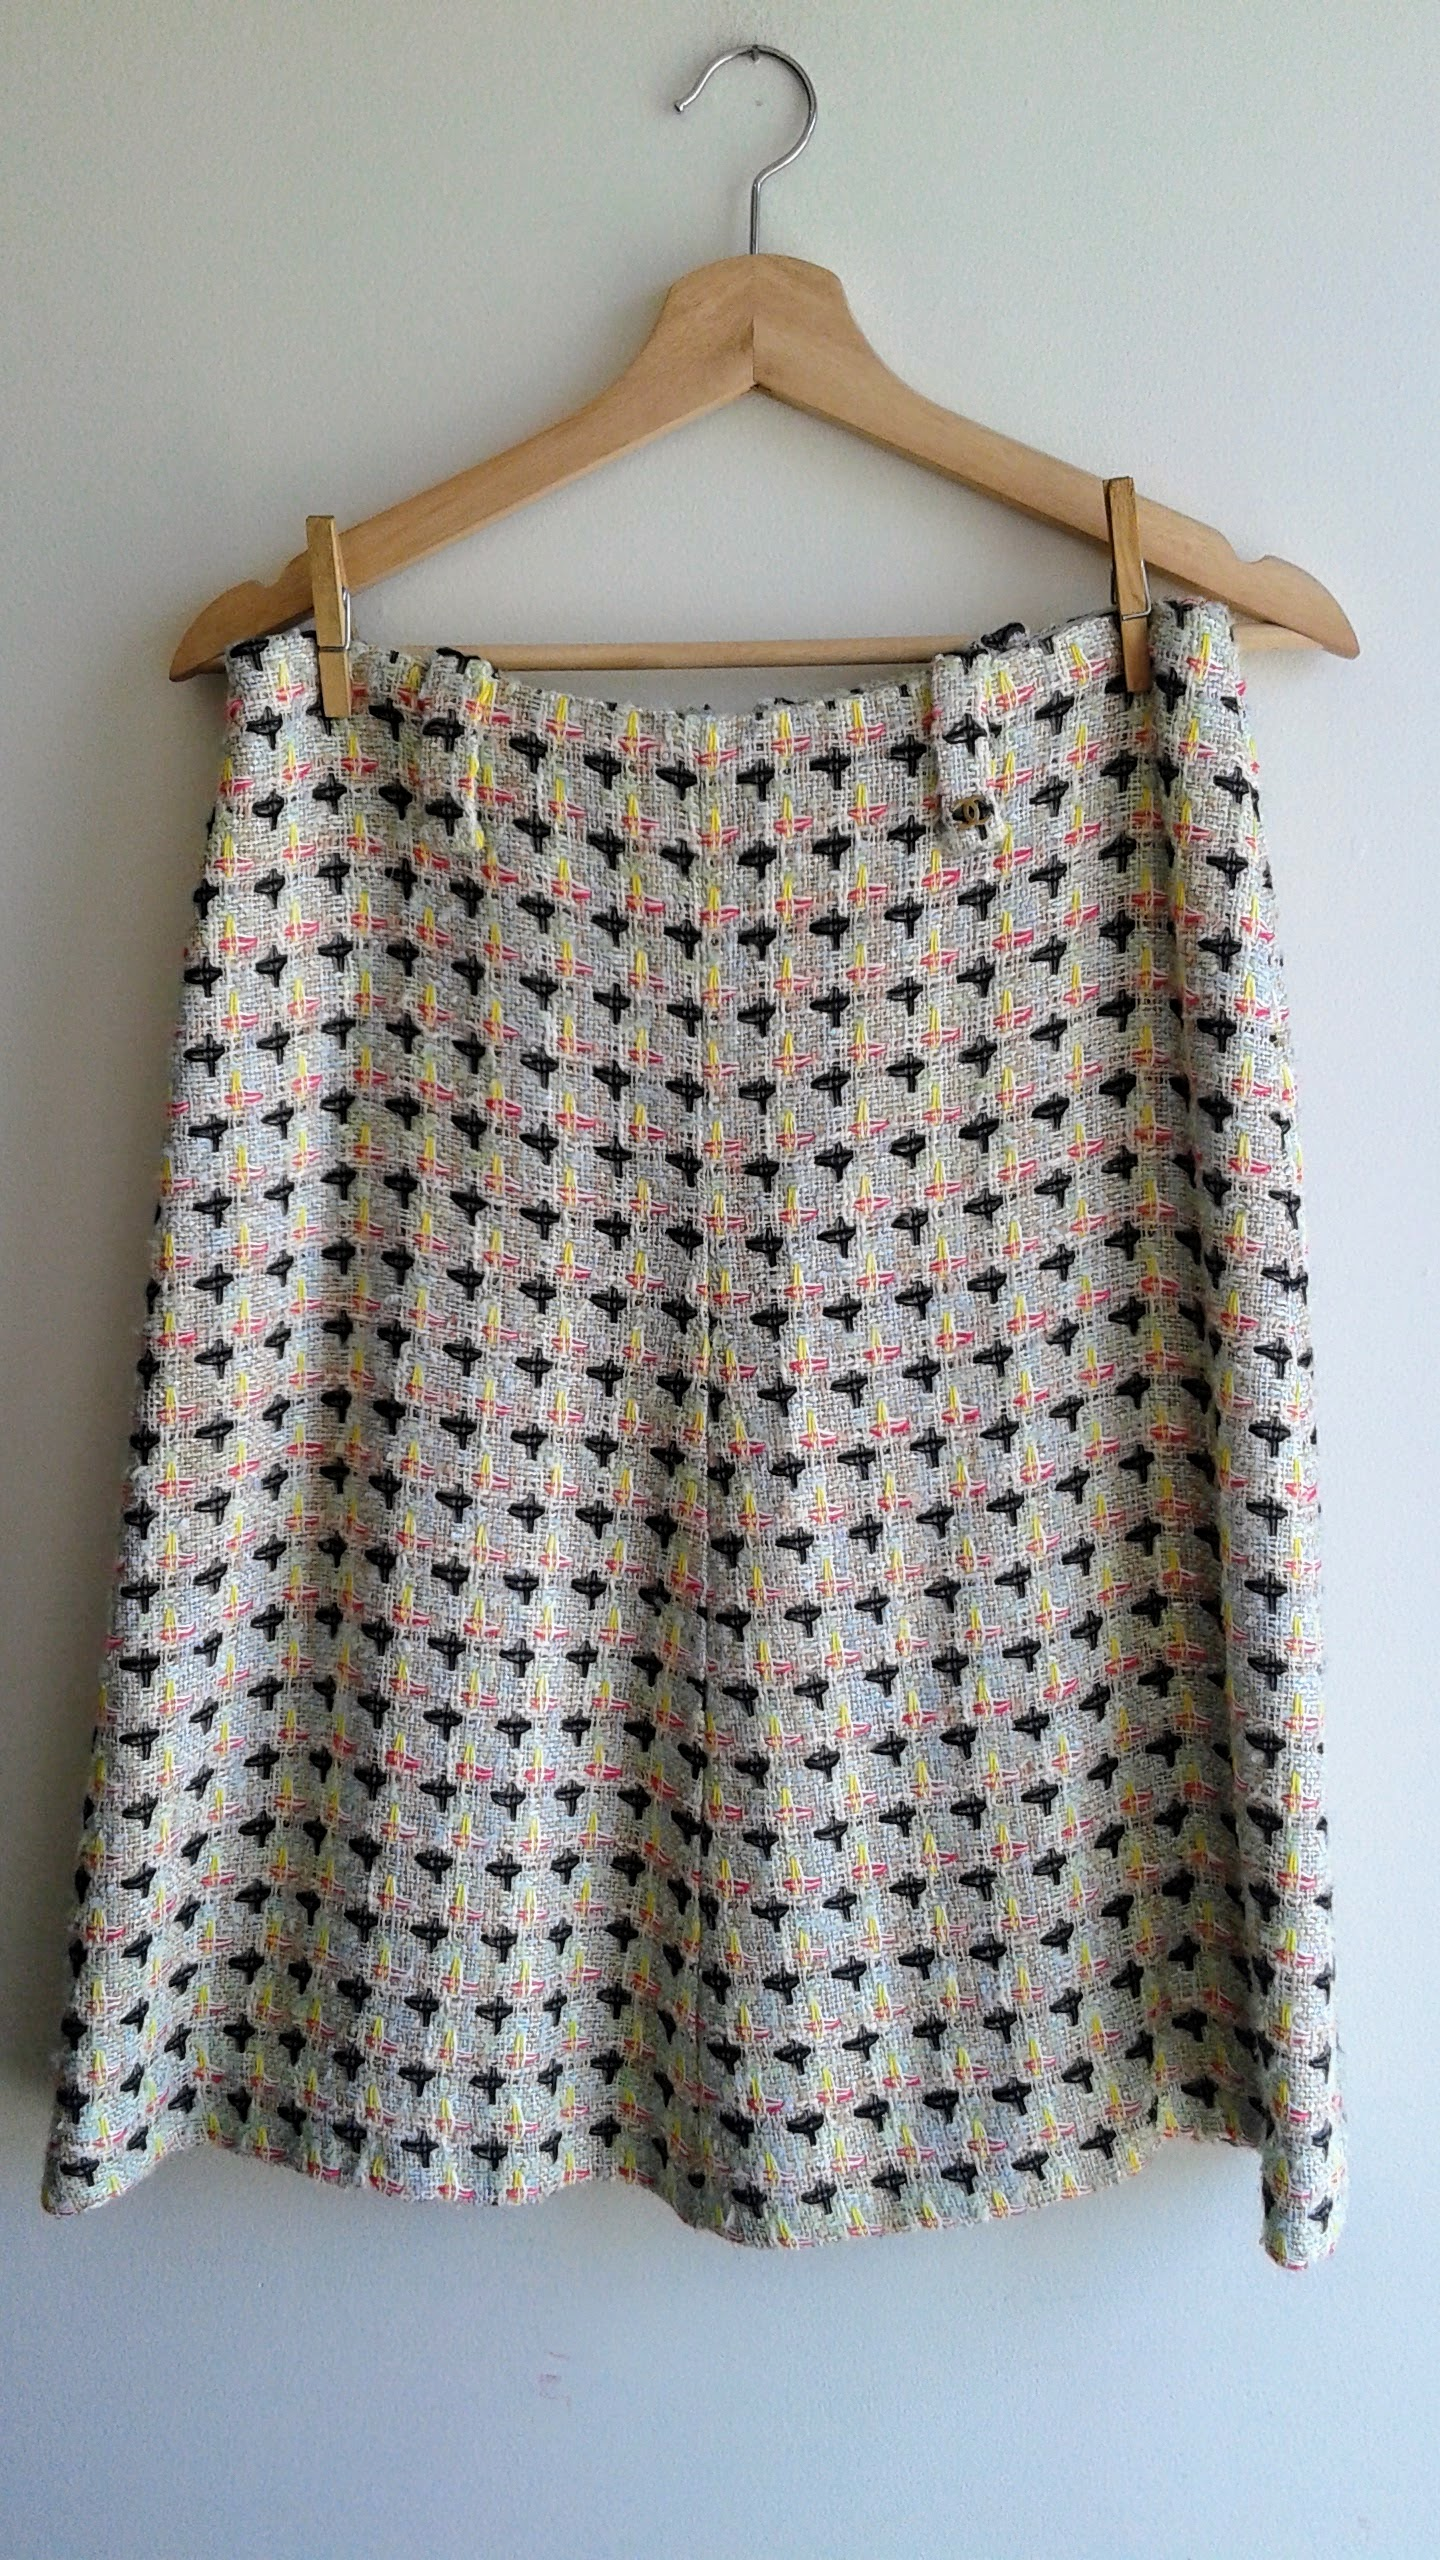 Chanel skirt; Size 8, $62